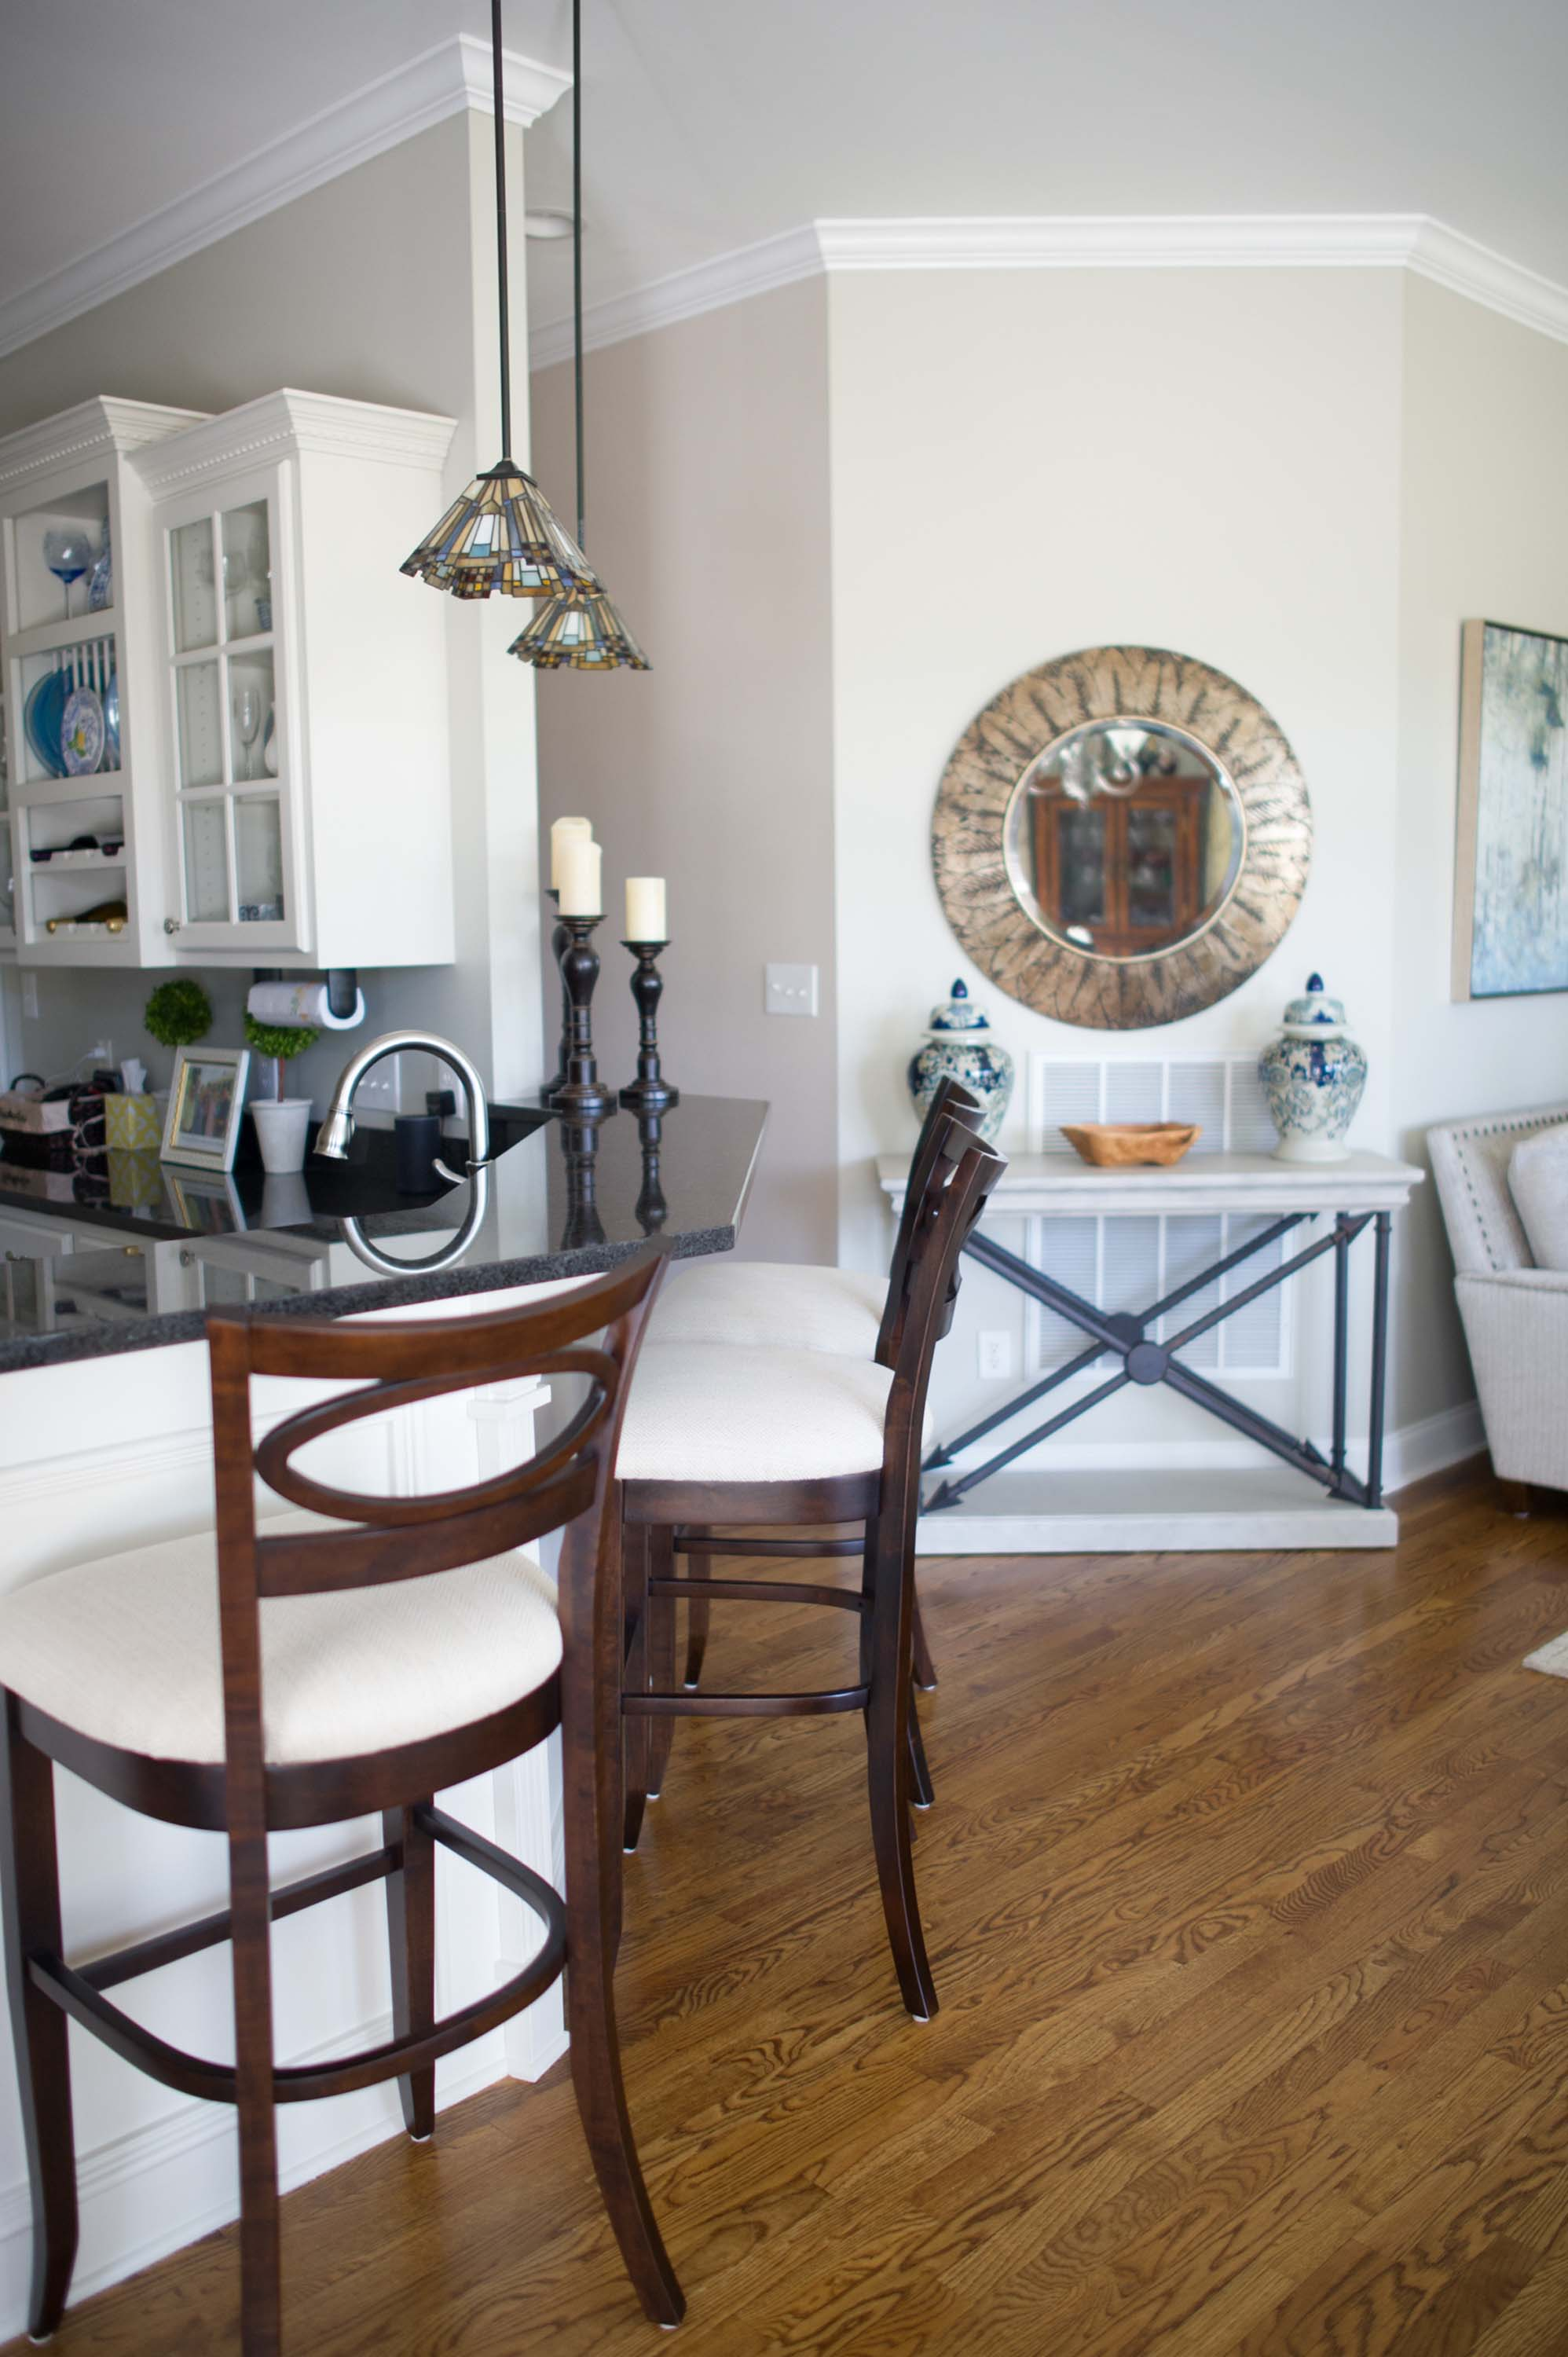 House interior with hardwood floor, counter and stools